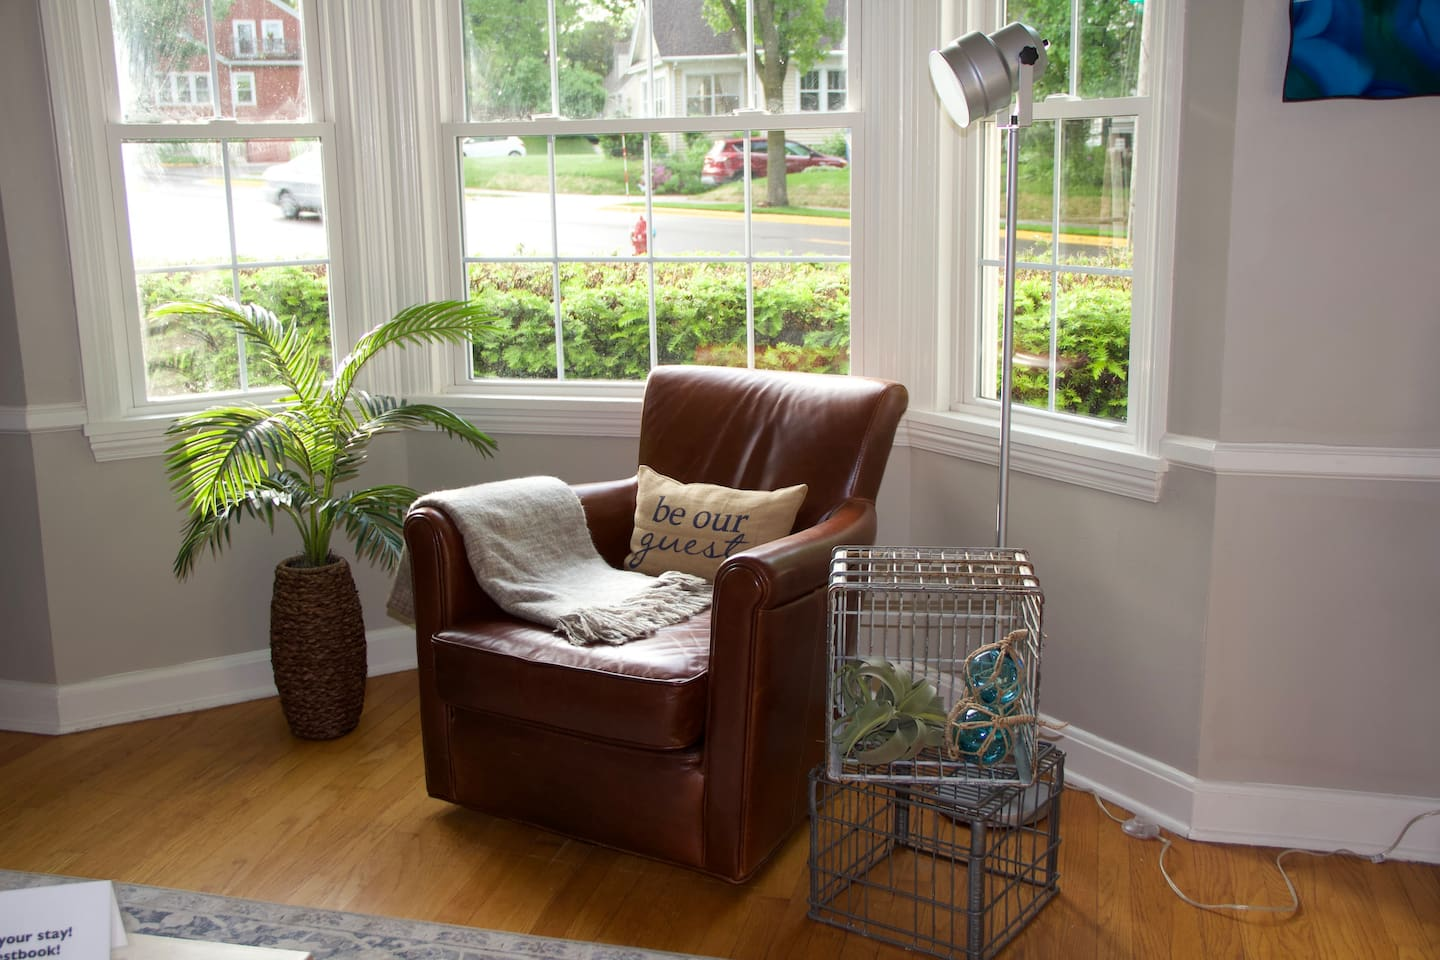 Be Our Guest!  This leather swivel chair is a great spot to catch the morning sun.